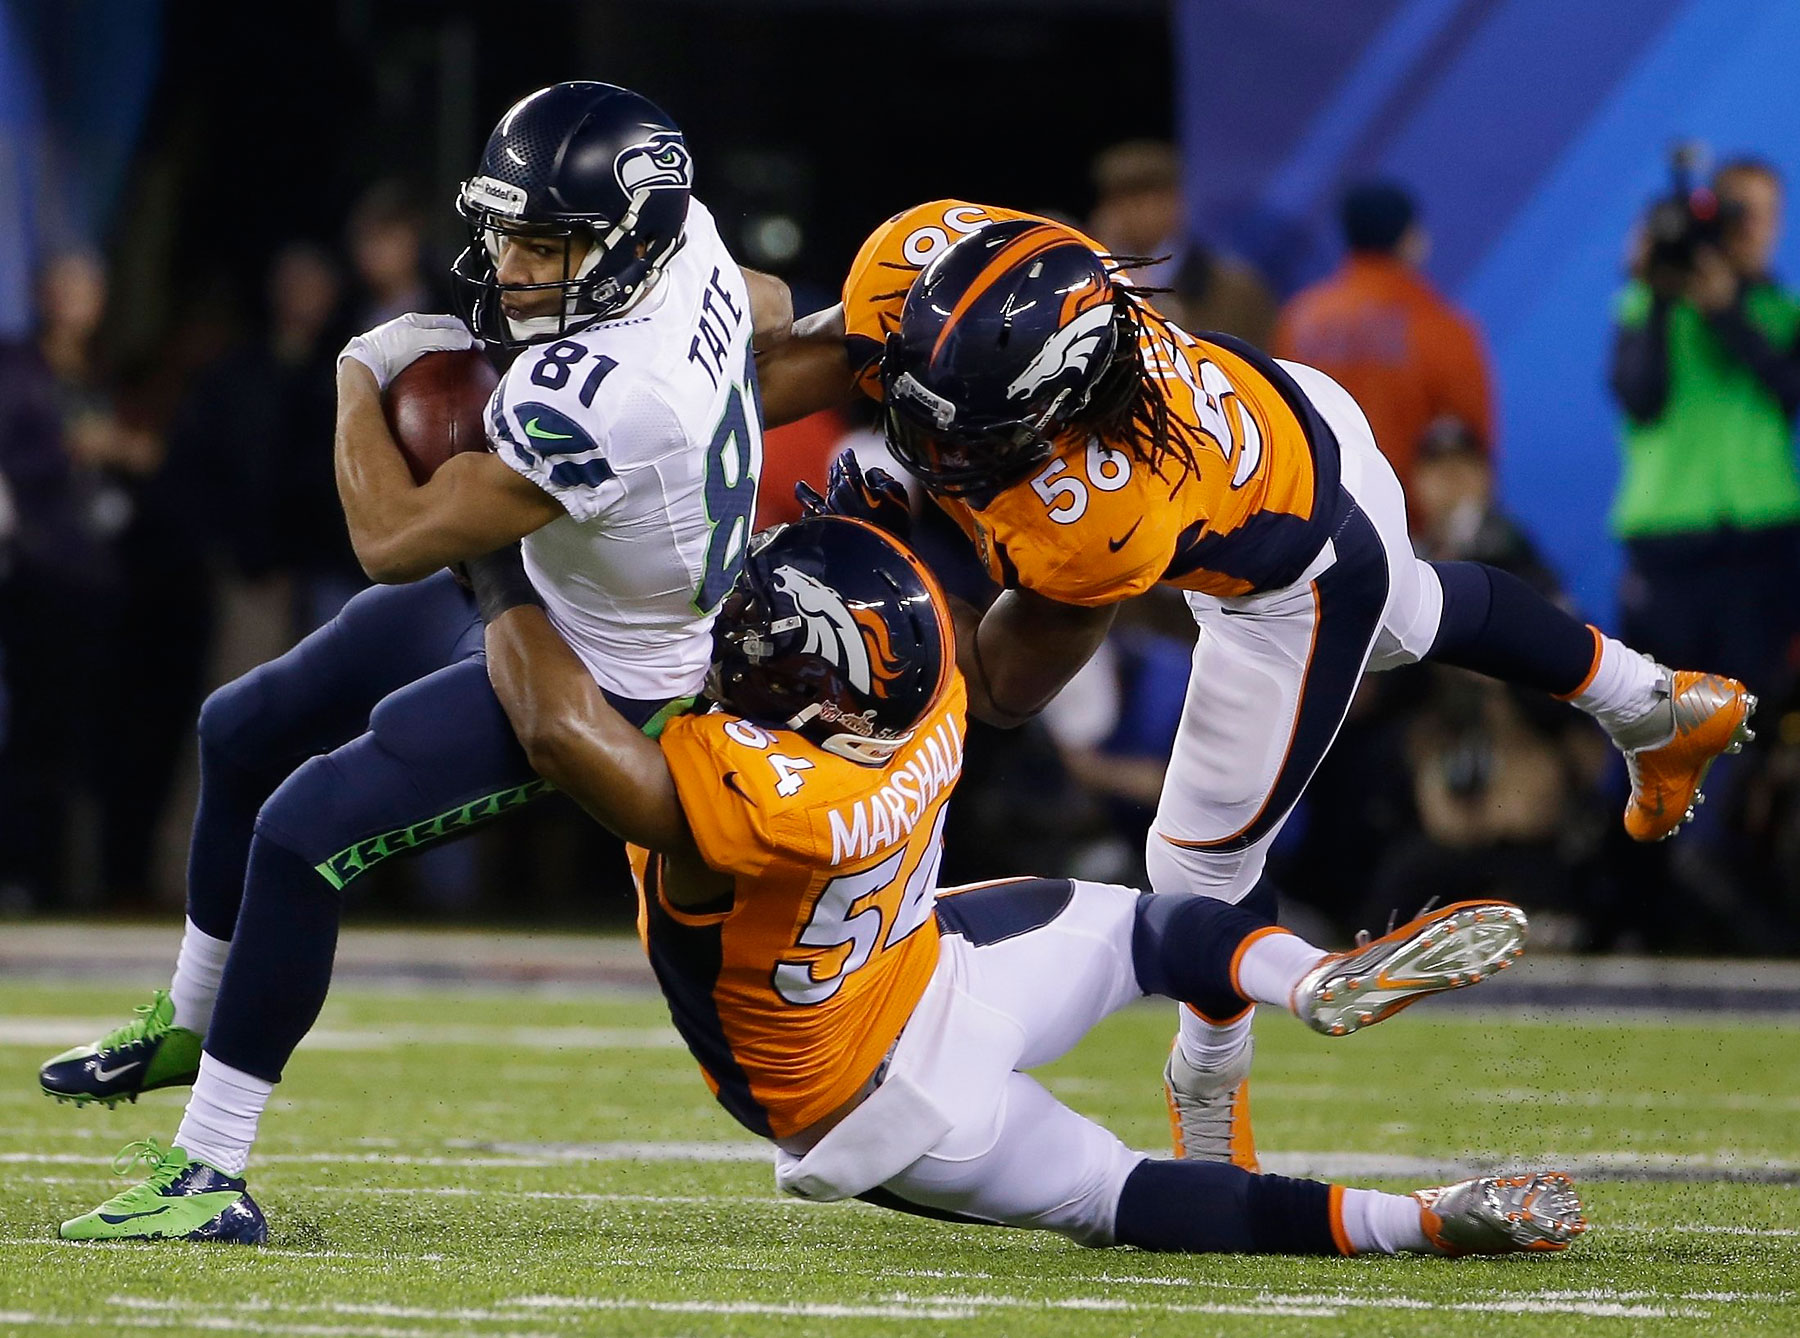 Seattle Seahawks' Golden Tate is tackled by Denver Broncos' Brandon Marshall and Nate Irving during the first quarter.